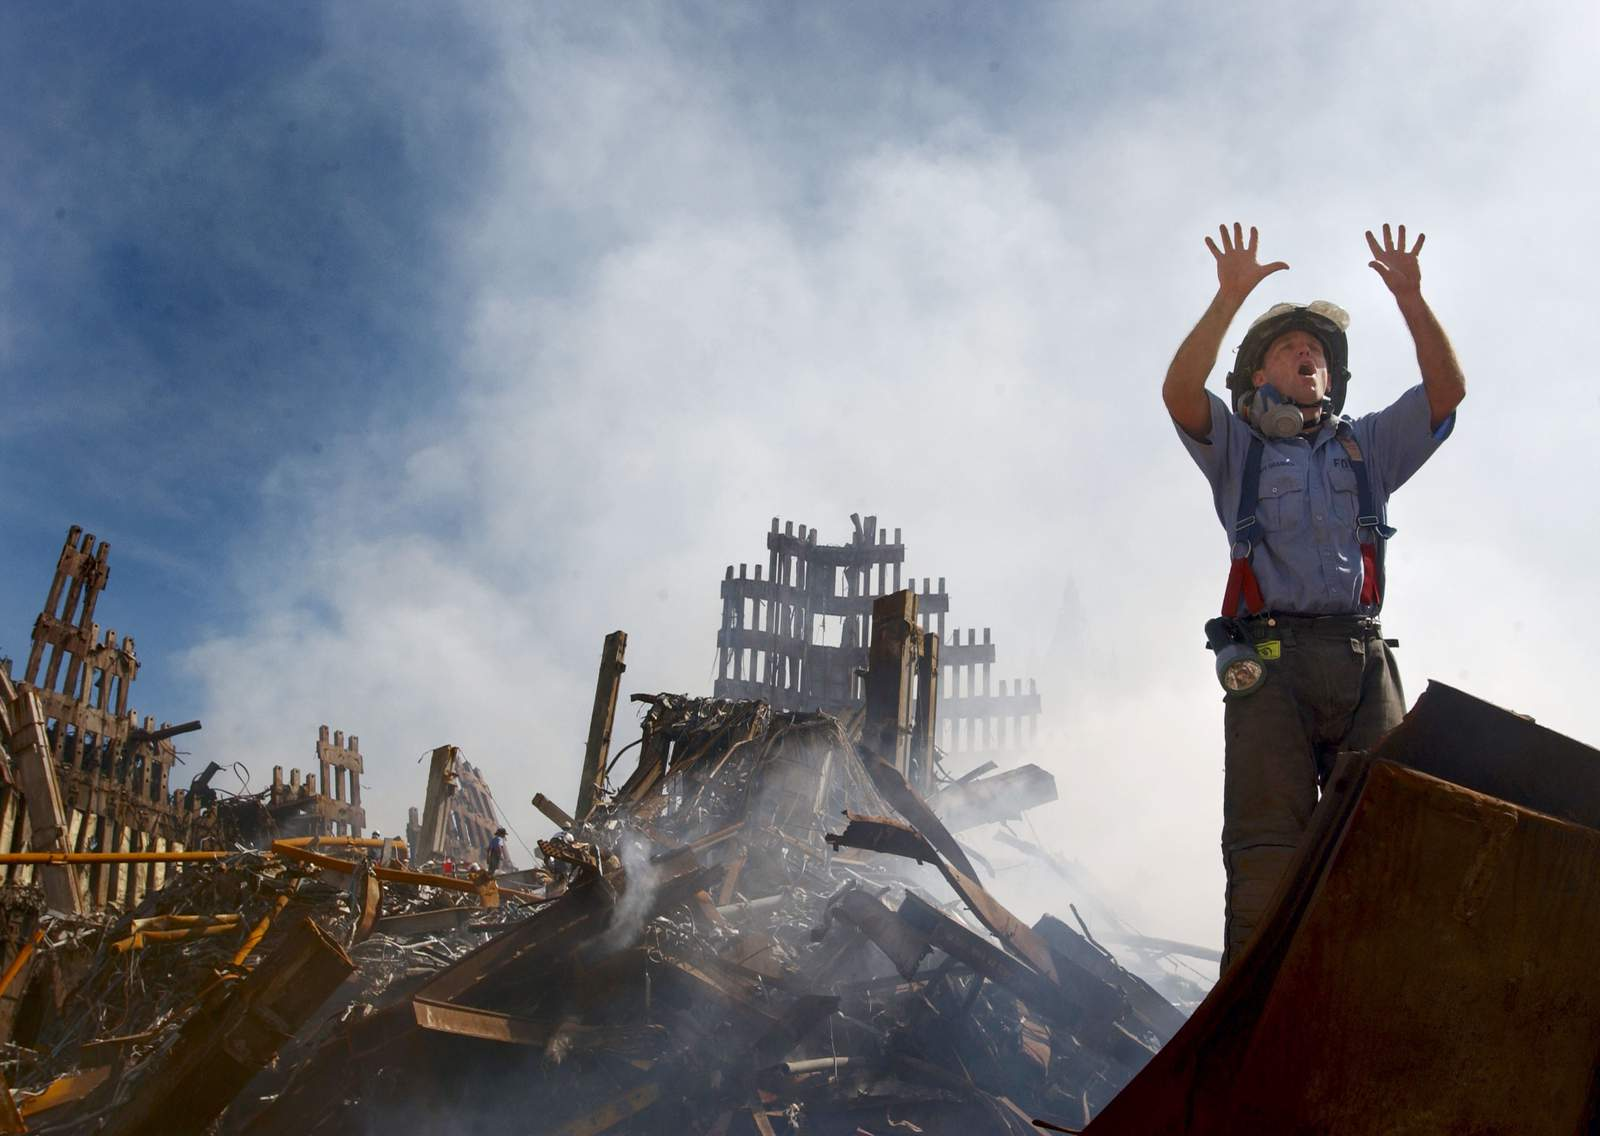 ANew York City fireman calls for 10 more rescue workers to make their way into the rubble of the World Trade Center, days after the Sept. 11, 2001 terrorist attack.